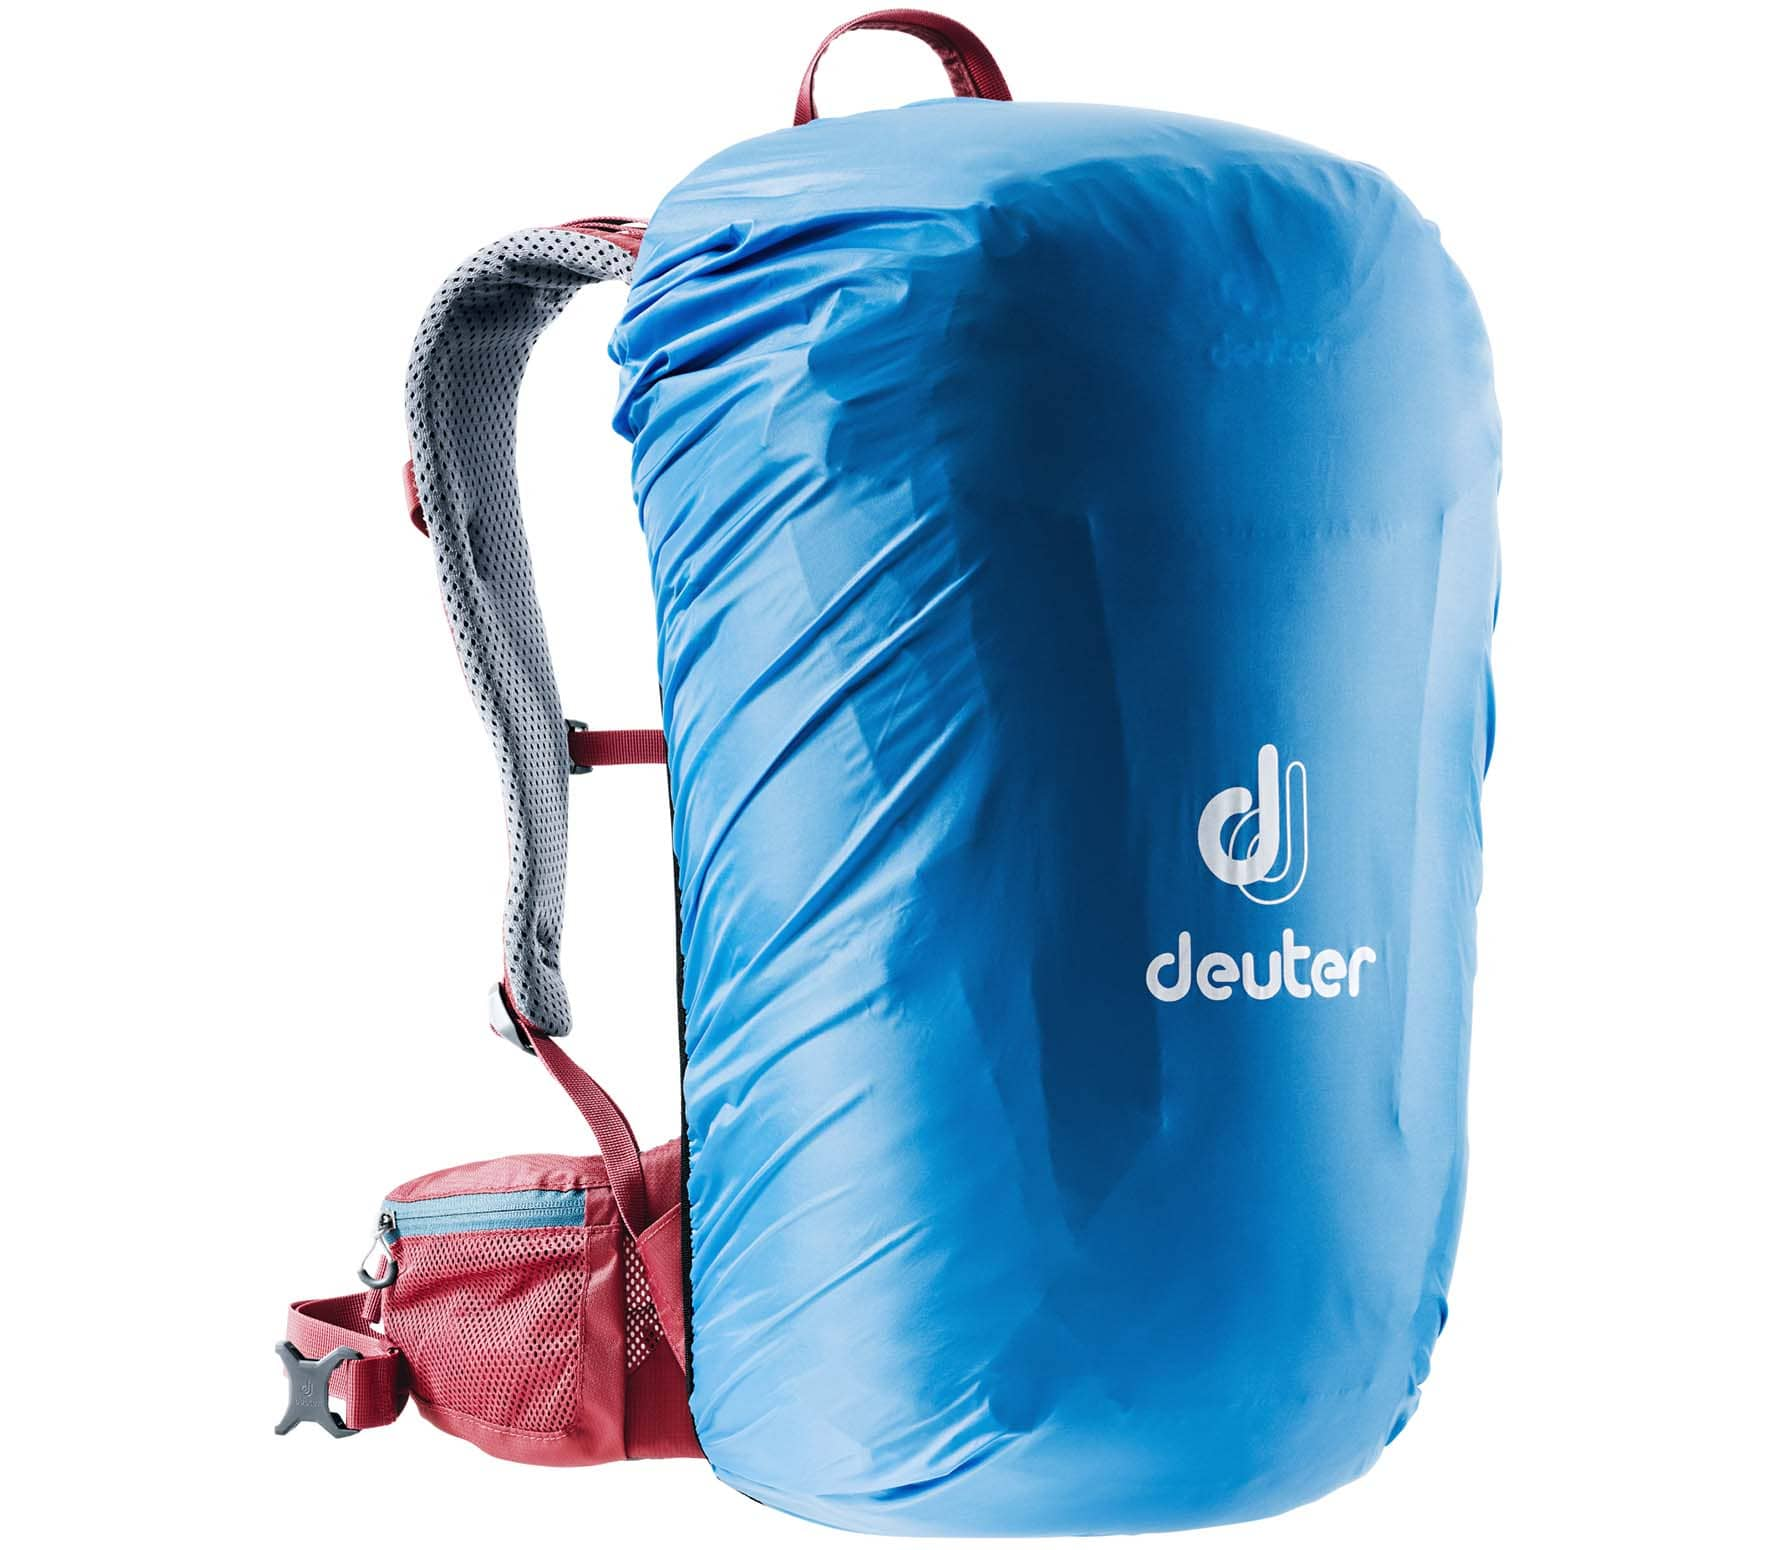 Deuter - Futura 28 hiking backpack (red)